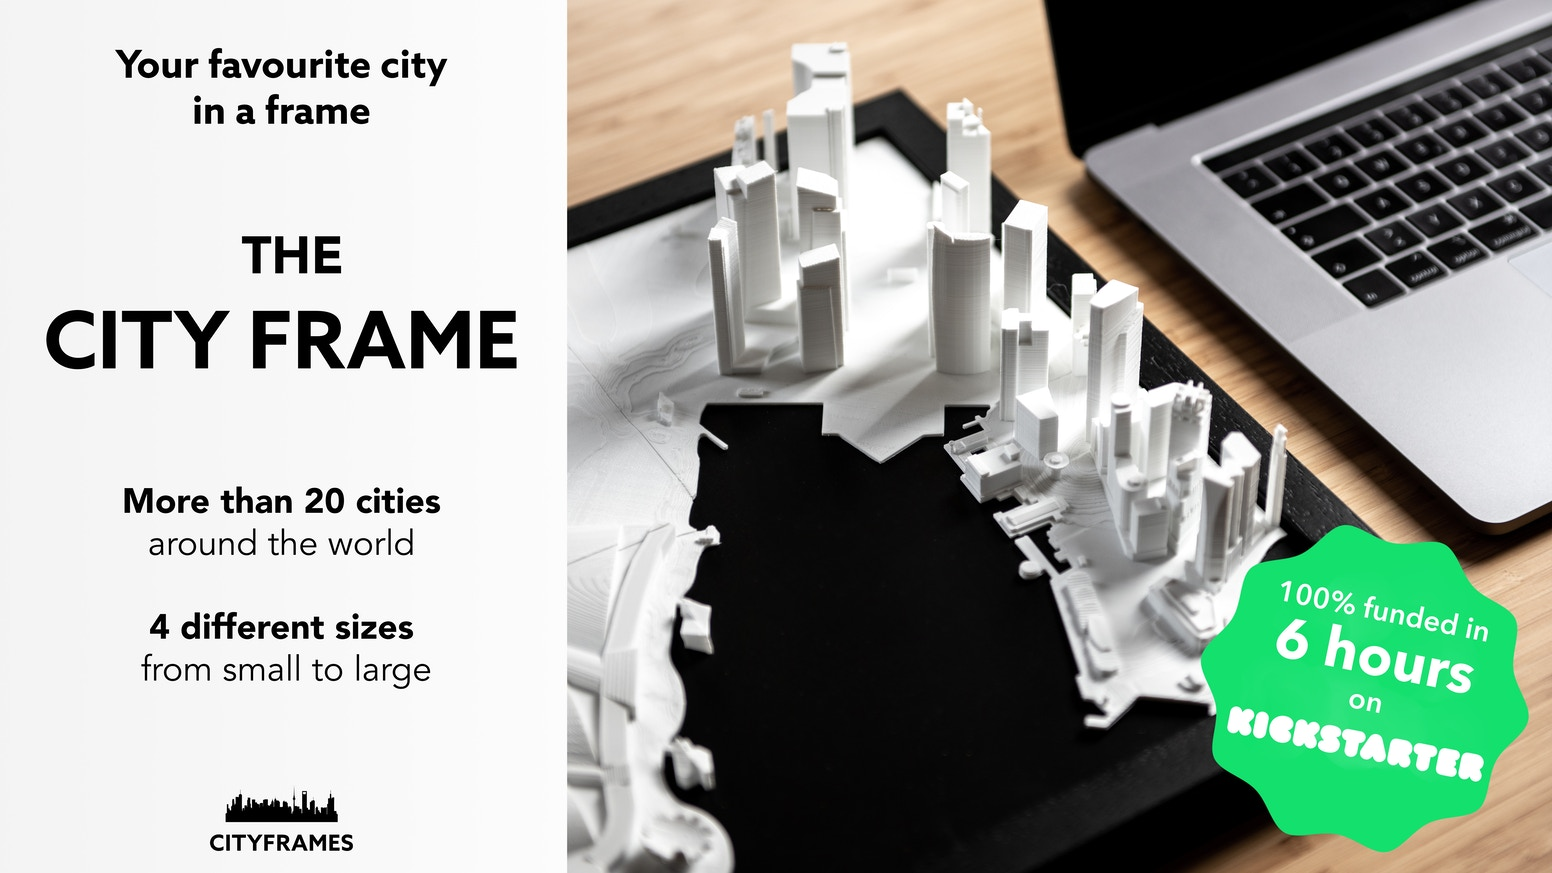 Your favourite city in a frame! A new kind of home decor and interior design.